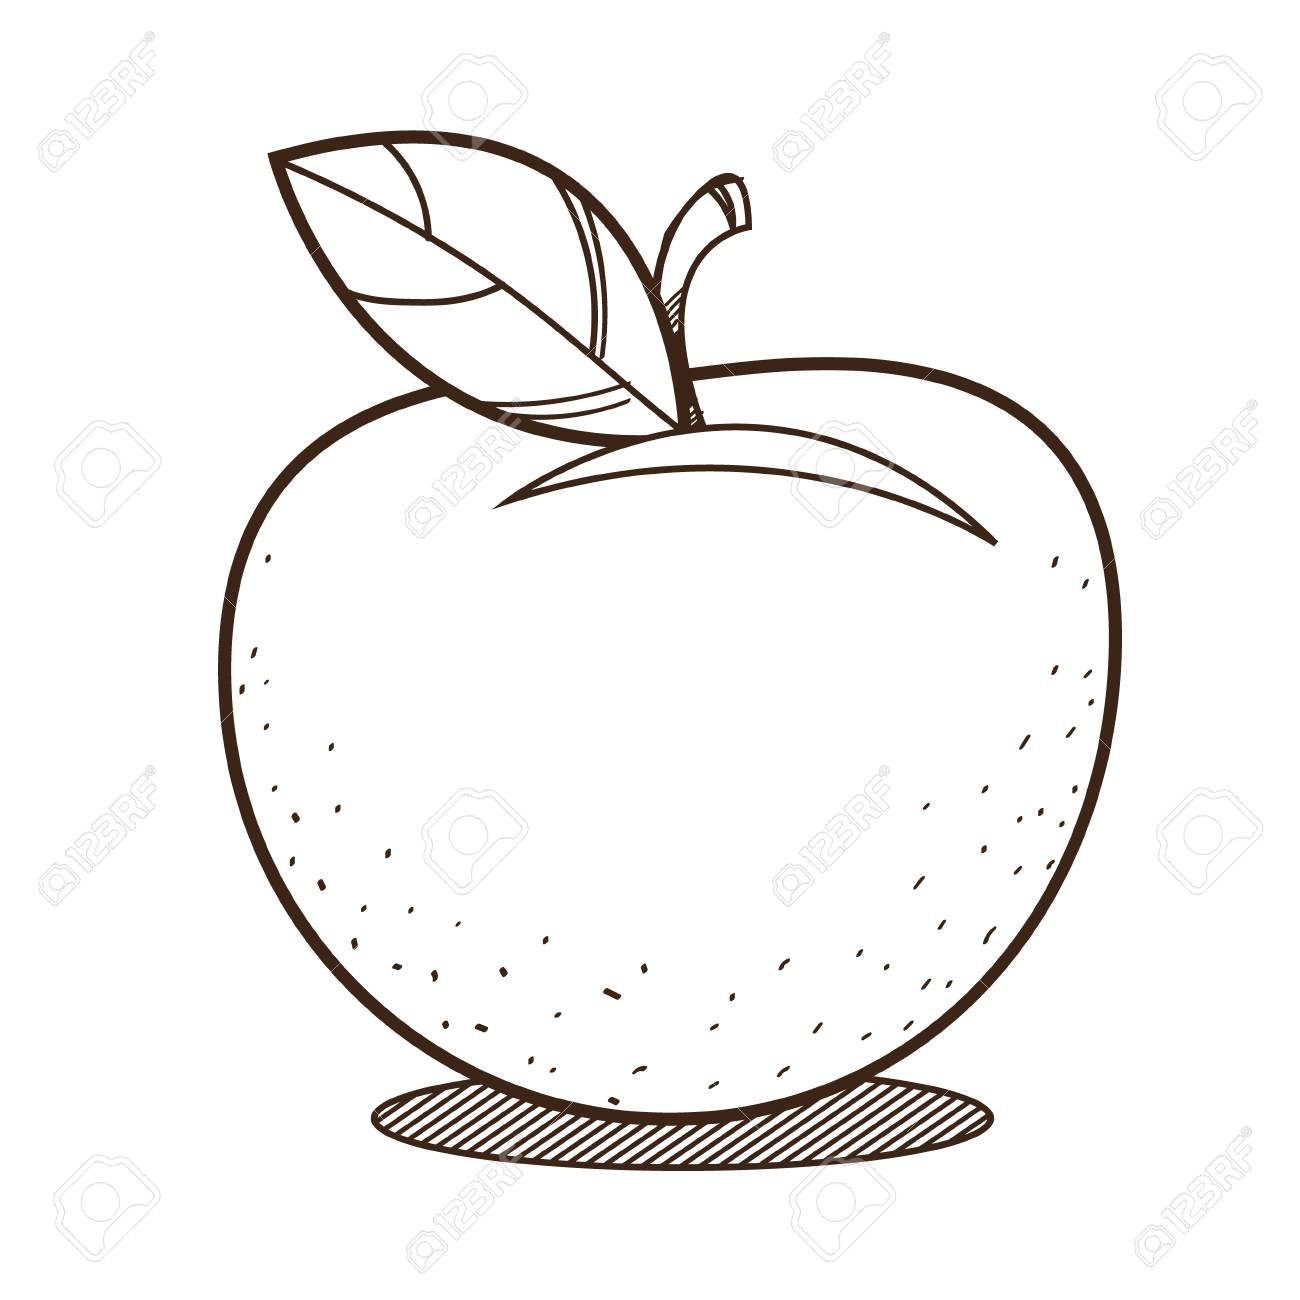 Apple Outline Drawing For Coloring Fruit Logo Royalty Free Cliparts Vectors And Stock Illustration Image 122695657